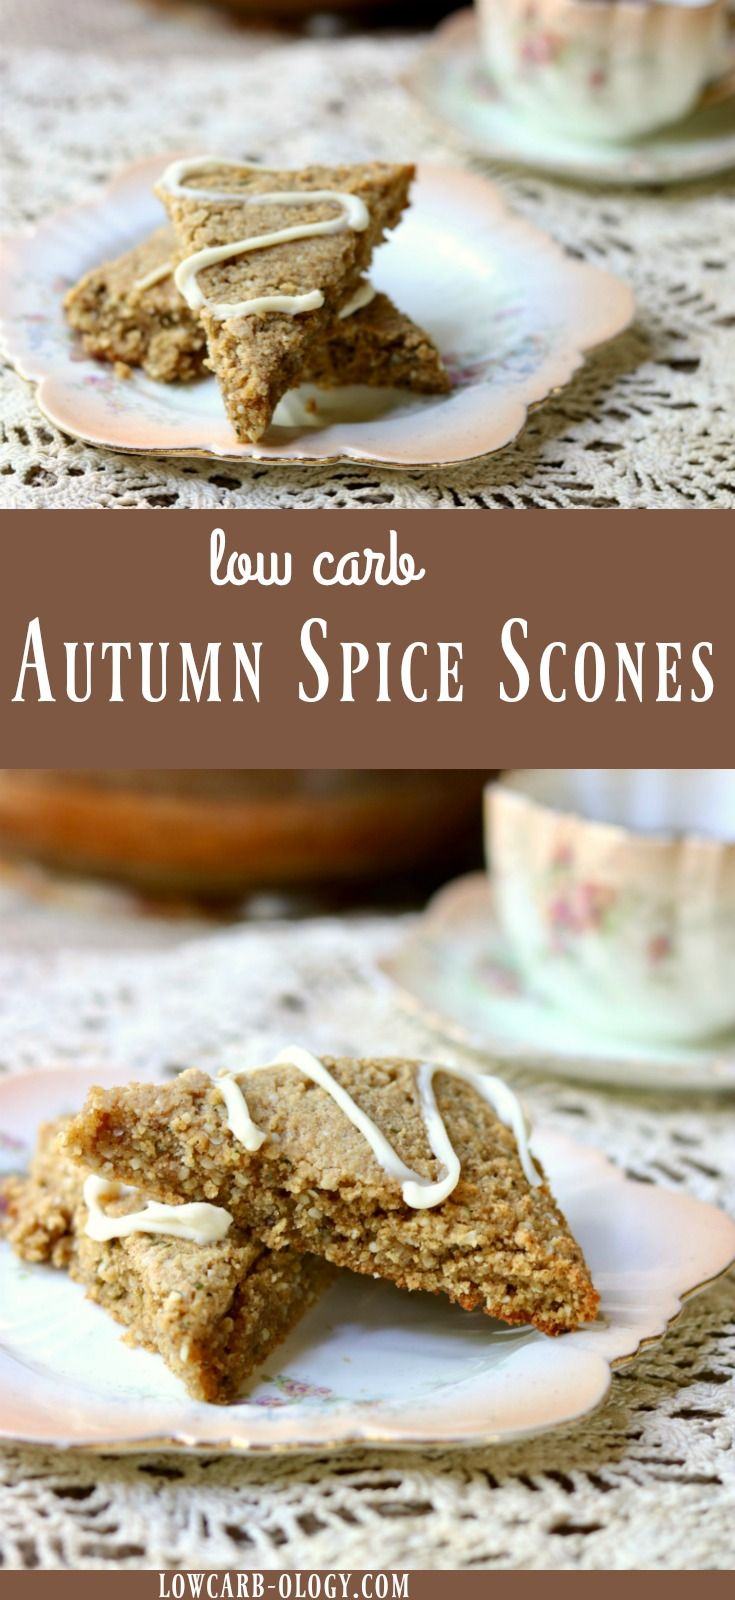 Welcome fall with these low carb Autumn Spice Scones topped with a toffee cream cheese glaze. Buttery and crumbly, these sweet treats are just as good with breakfast coffee as they are with afternoon tea. With just 3 net carbs, you'll want to have a batch of these in the freezer all season long. From RestlessChipotle.com